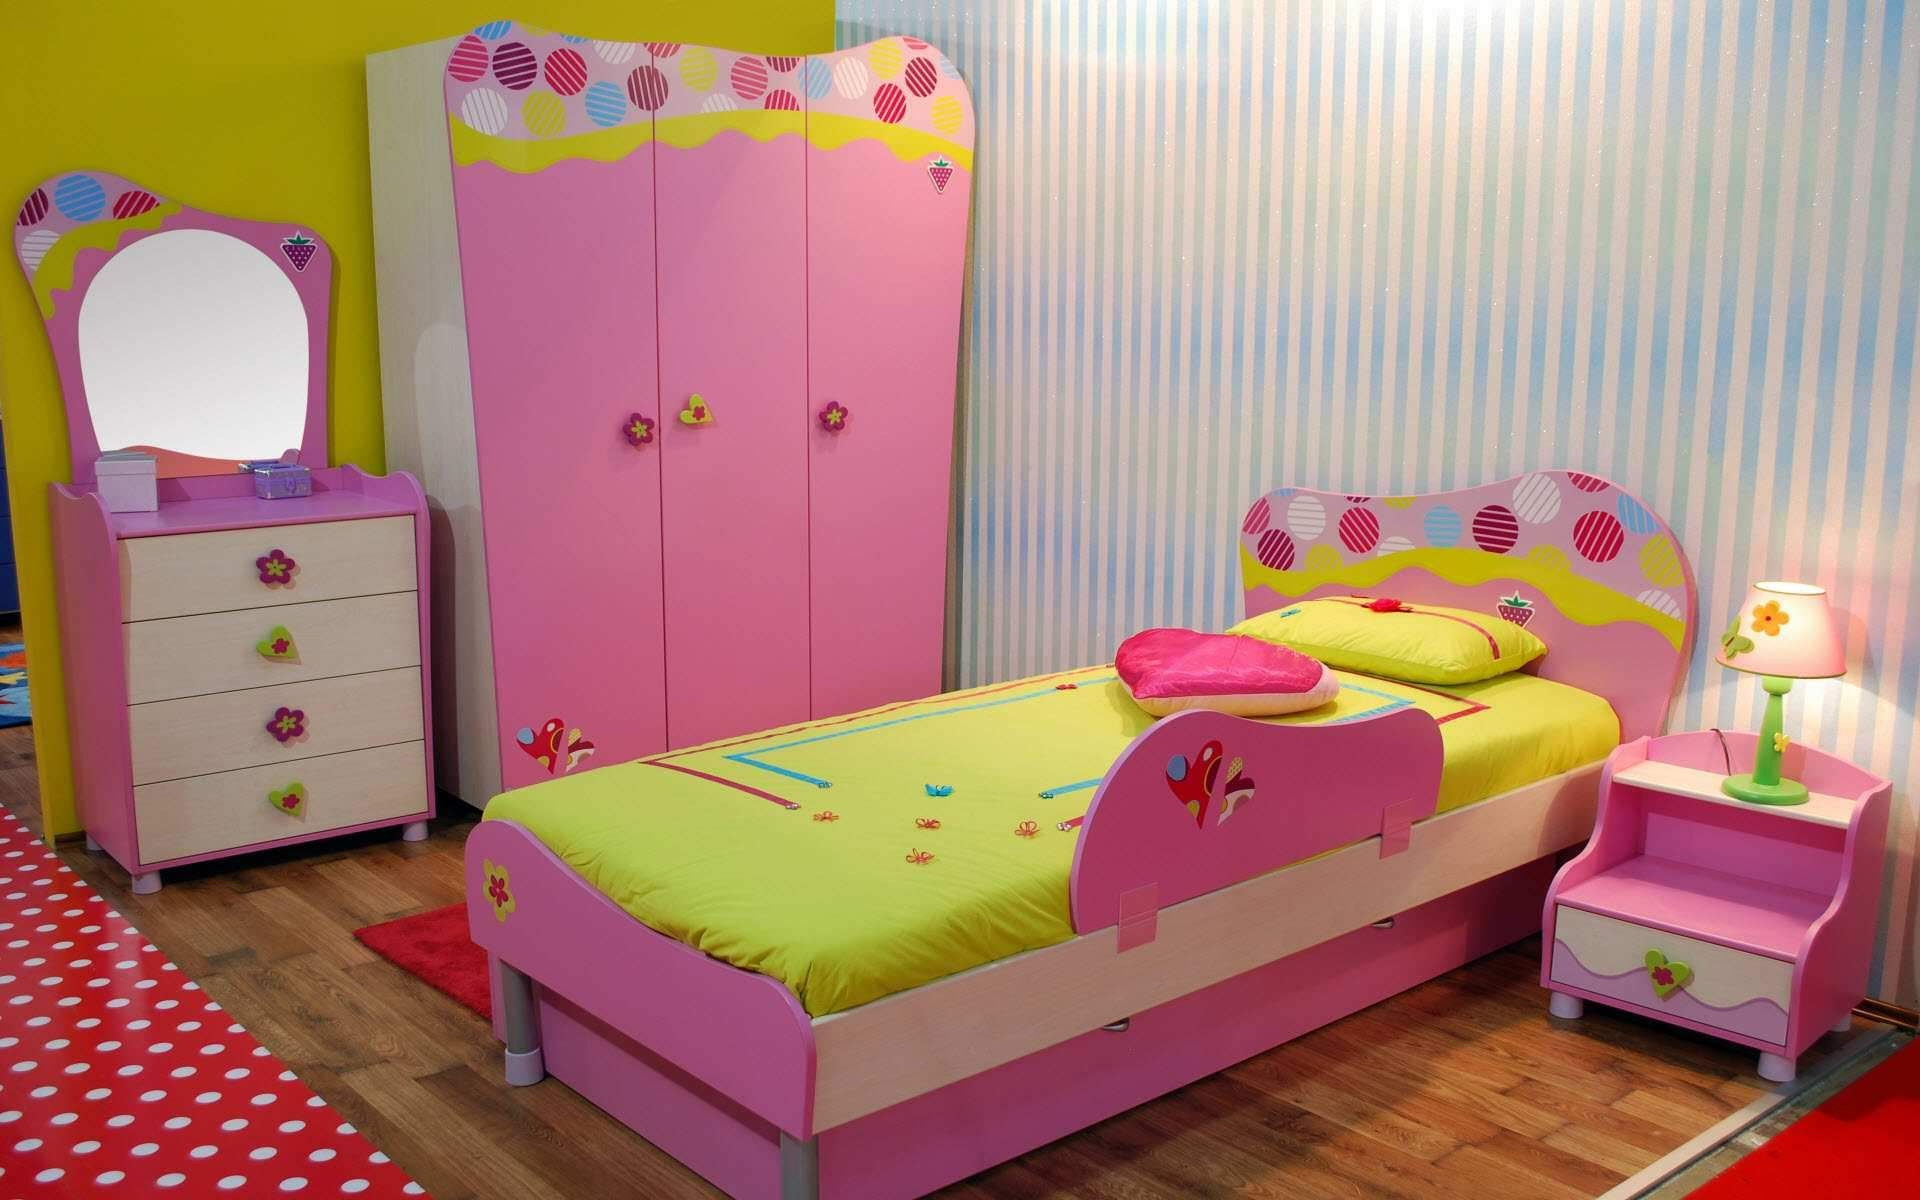 Bedrooms For Kids 1000 Images About Kids Bedrooms On PinterestChilds Bedroom